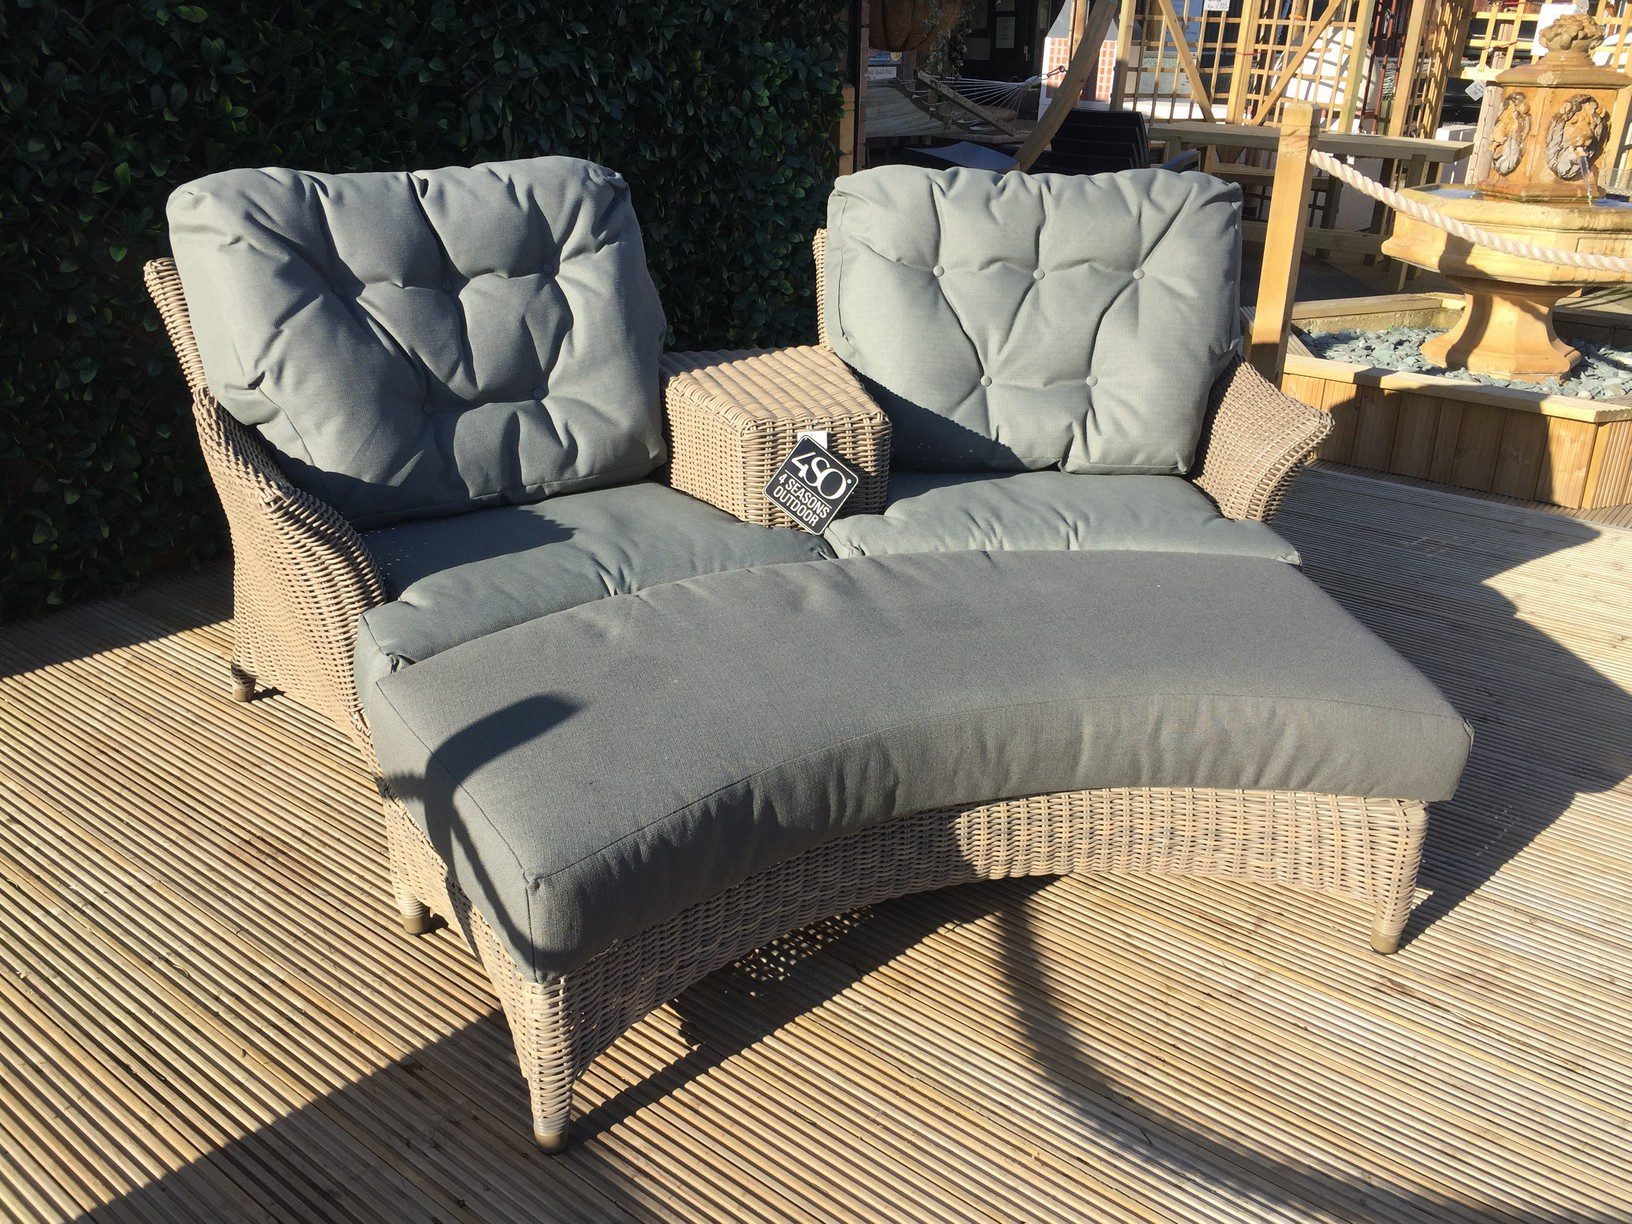 4 Seasons Outdoor Valentine Love Seat With Footrest 1